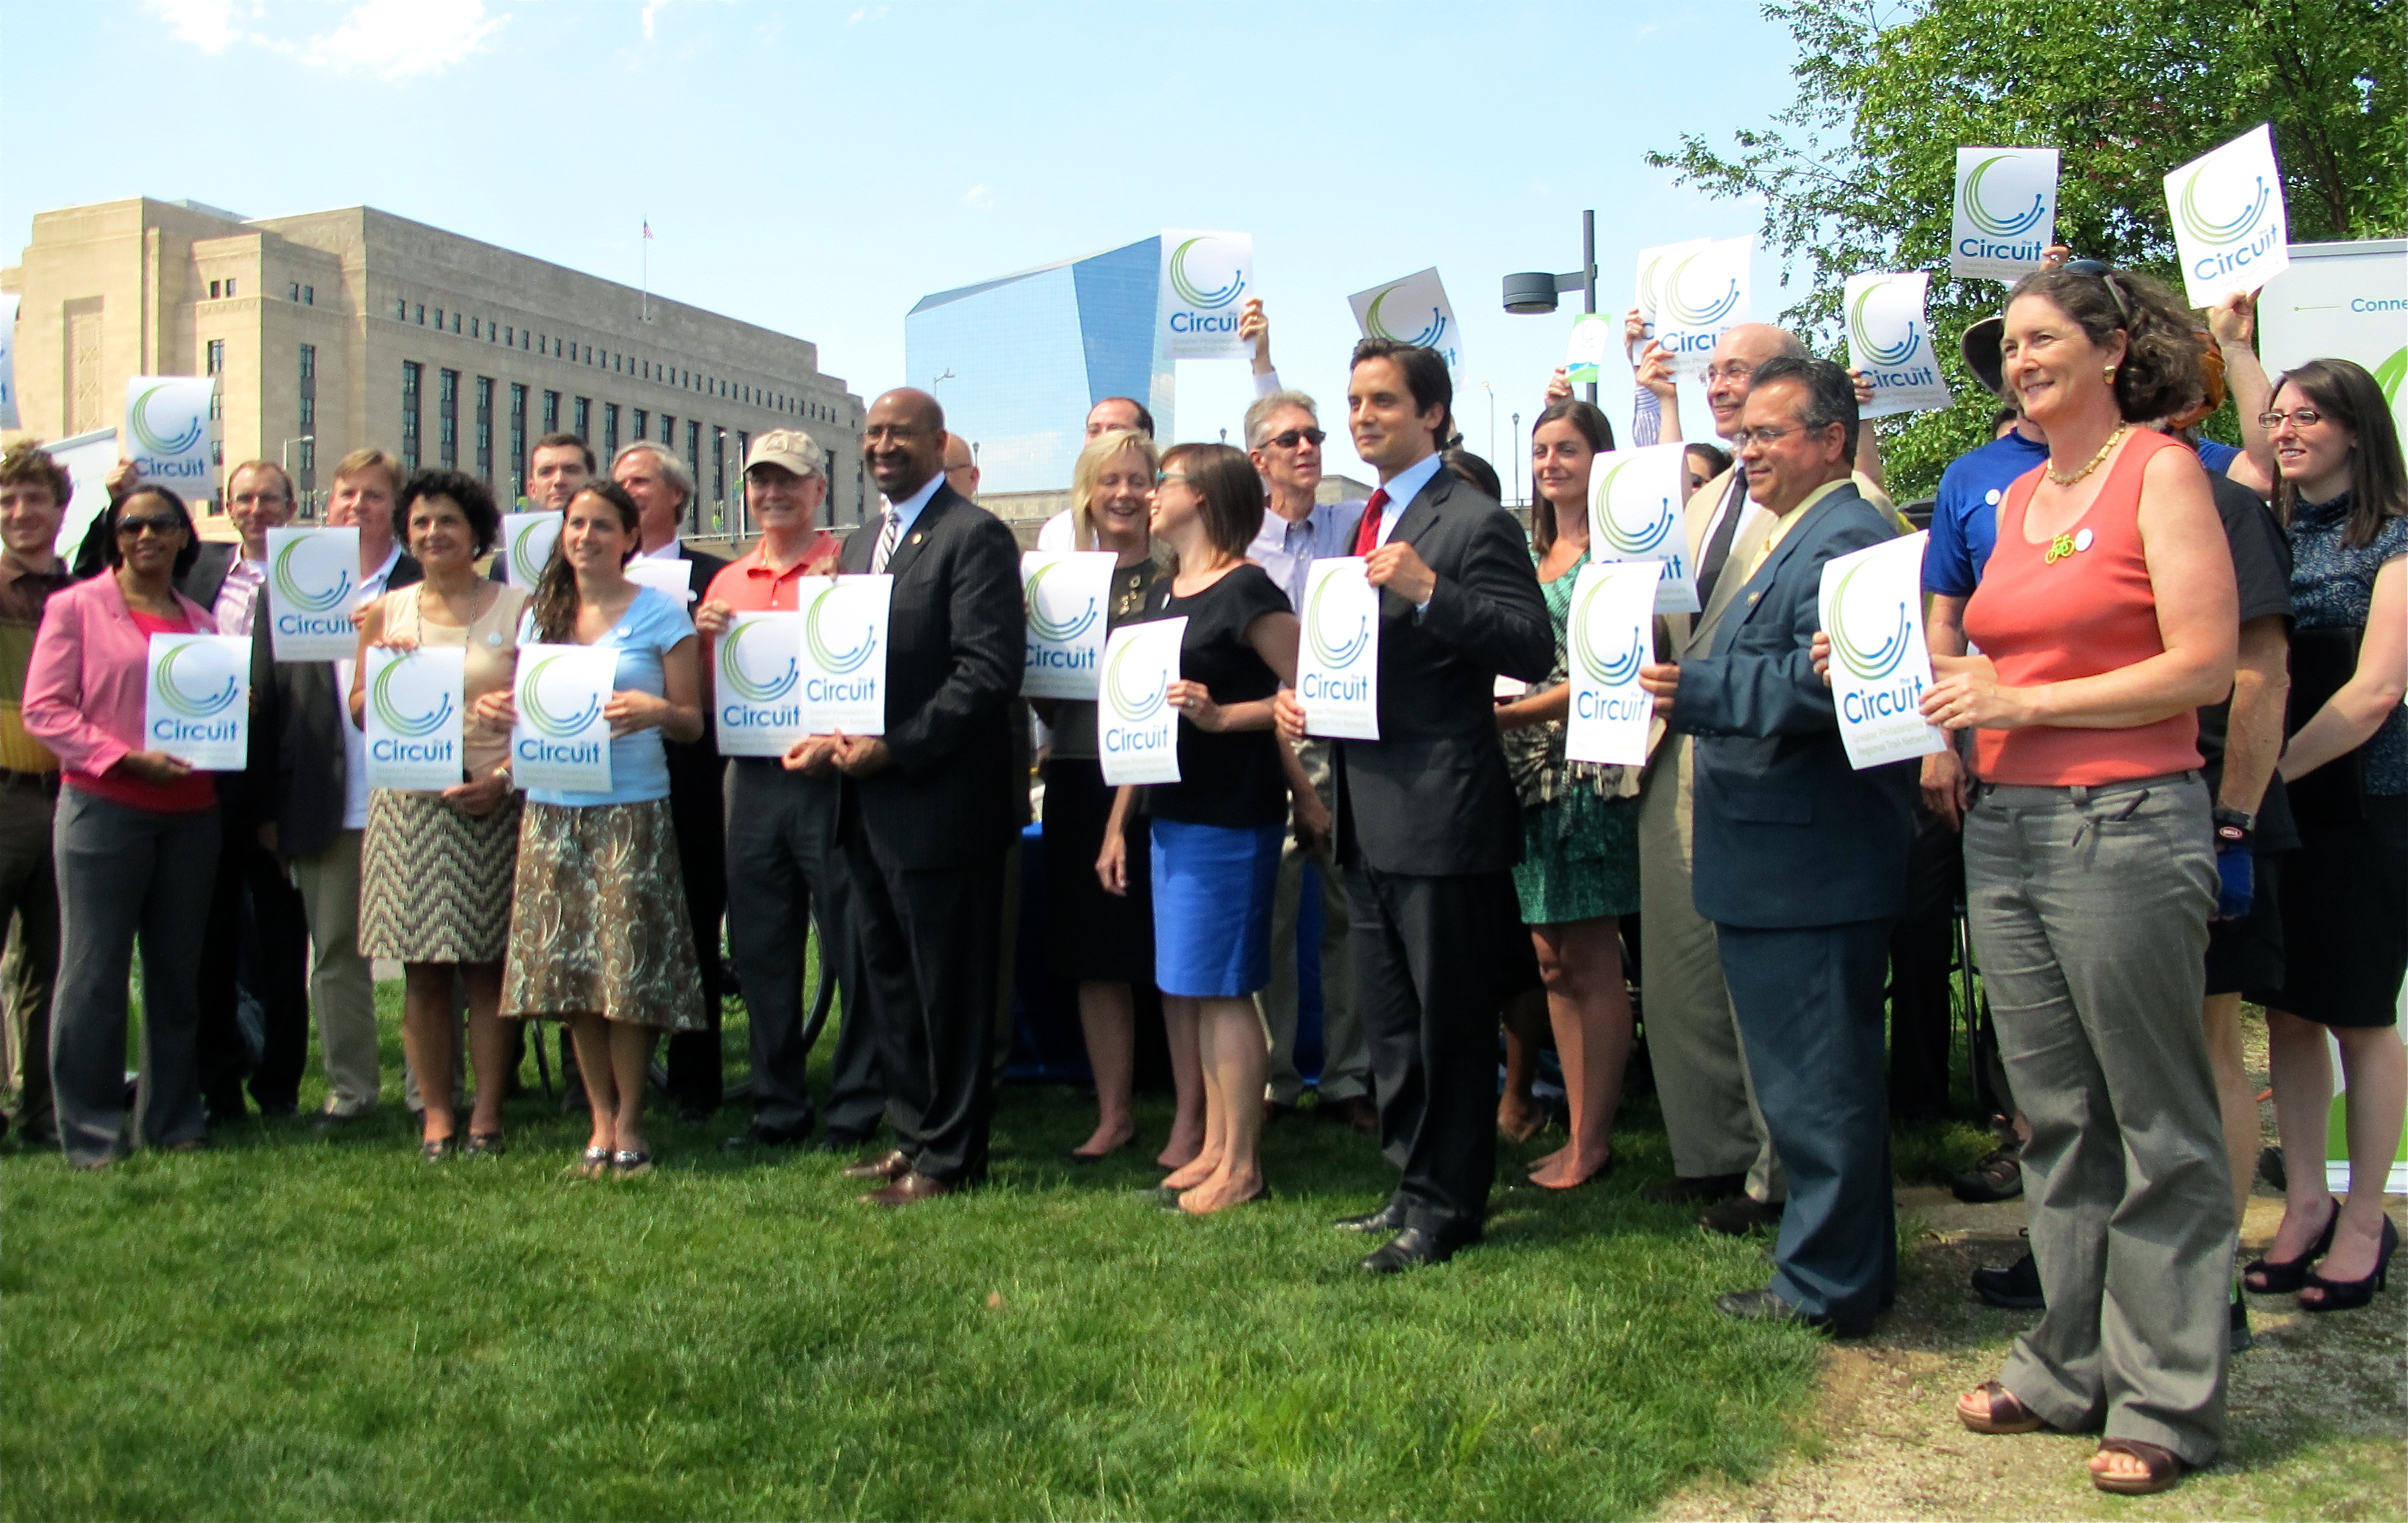 (A big-tent coalition gathered at the Schuylkill Banks Thursday to announce The Circuit.)